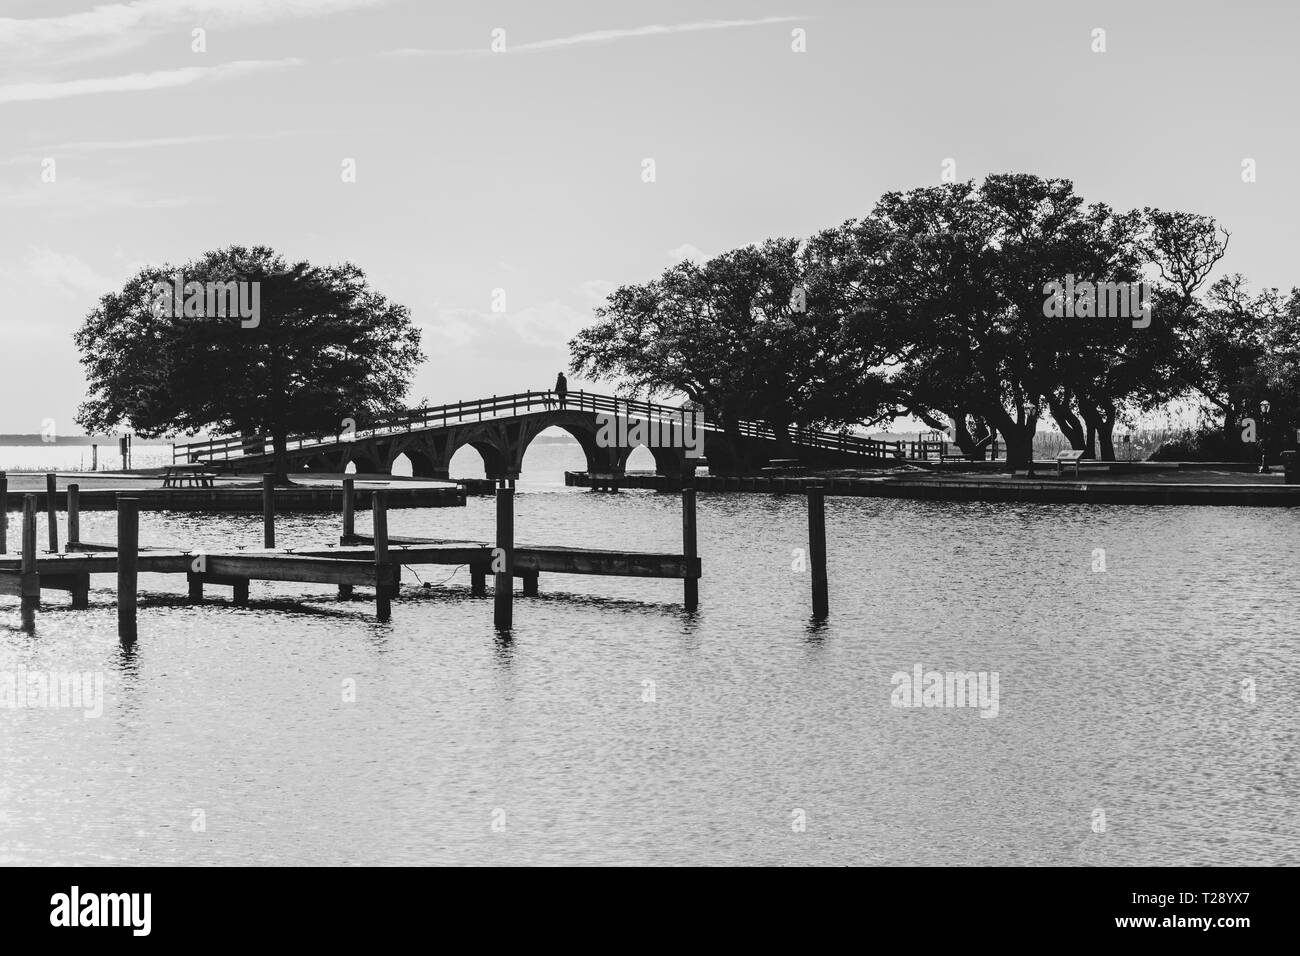 A woman and her dog are seen on a distant footbridge over water Stock Photo